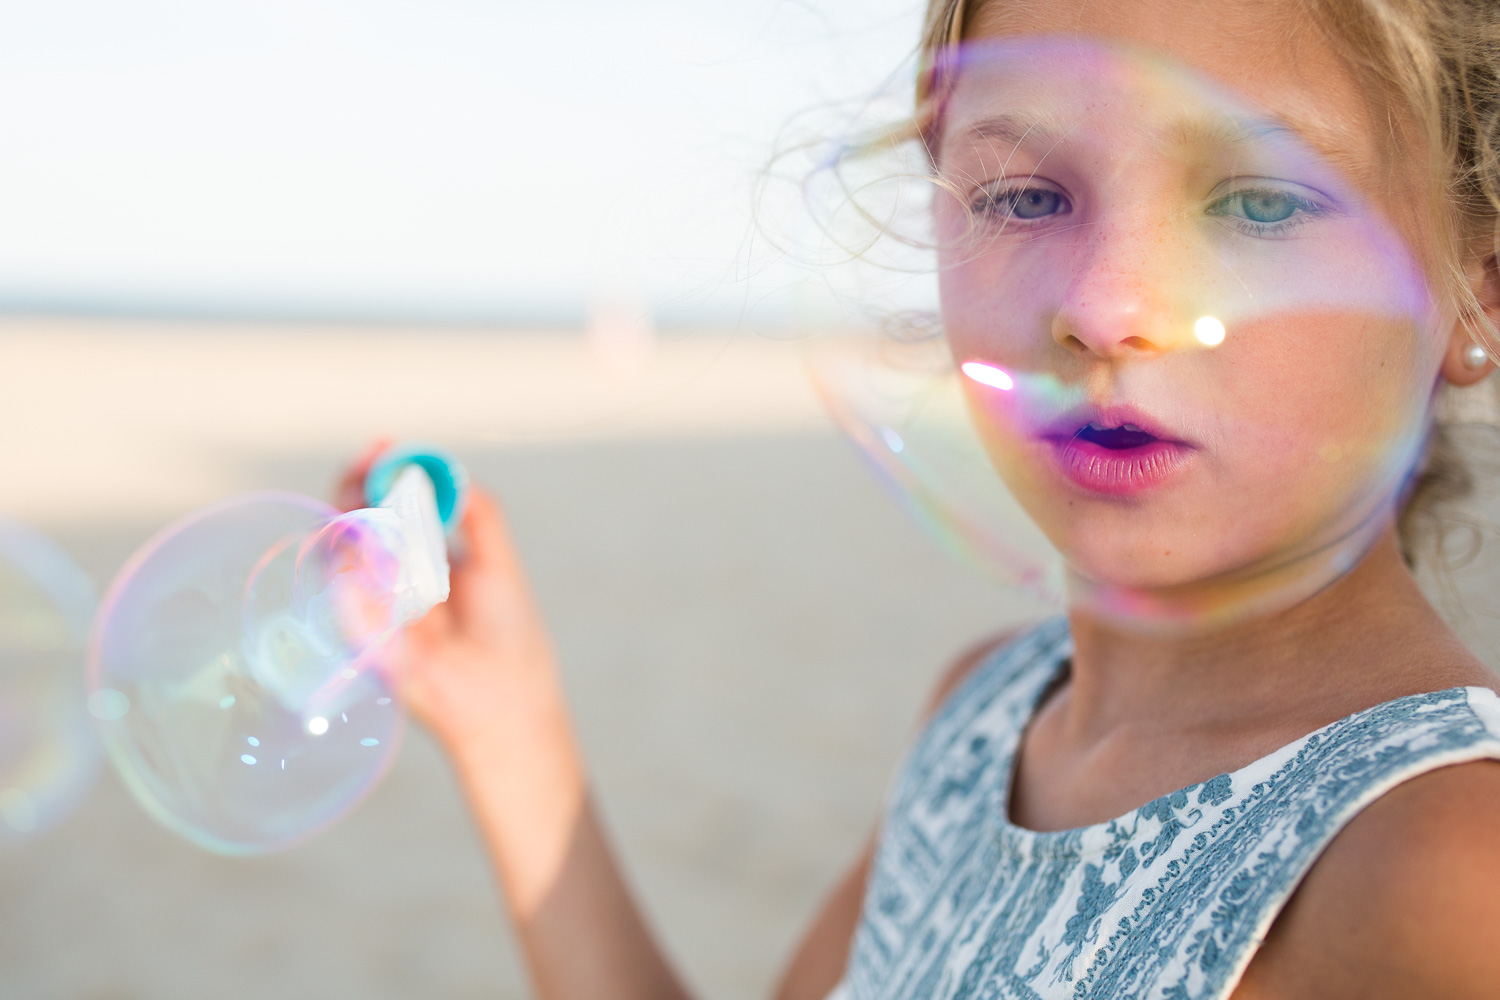 rebecca_wyatt_girl_with_bubbles_cm (1 of 1).jpg